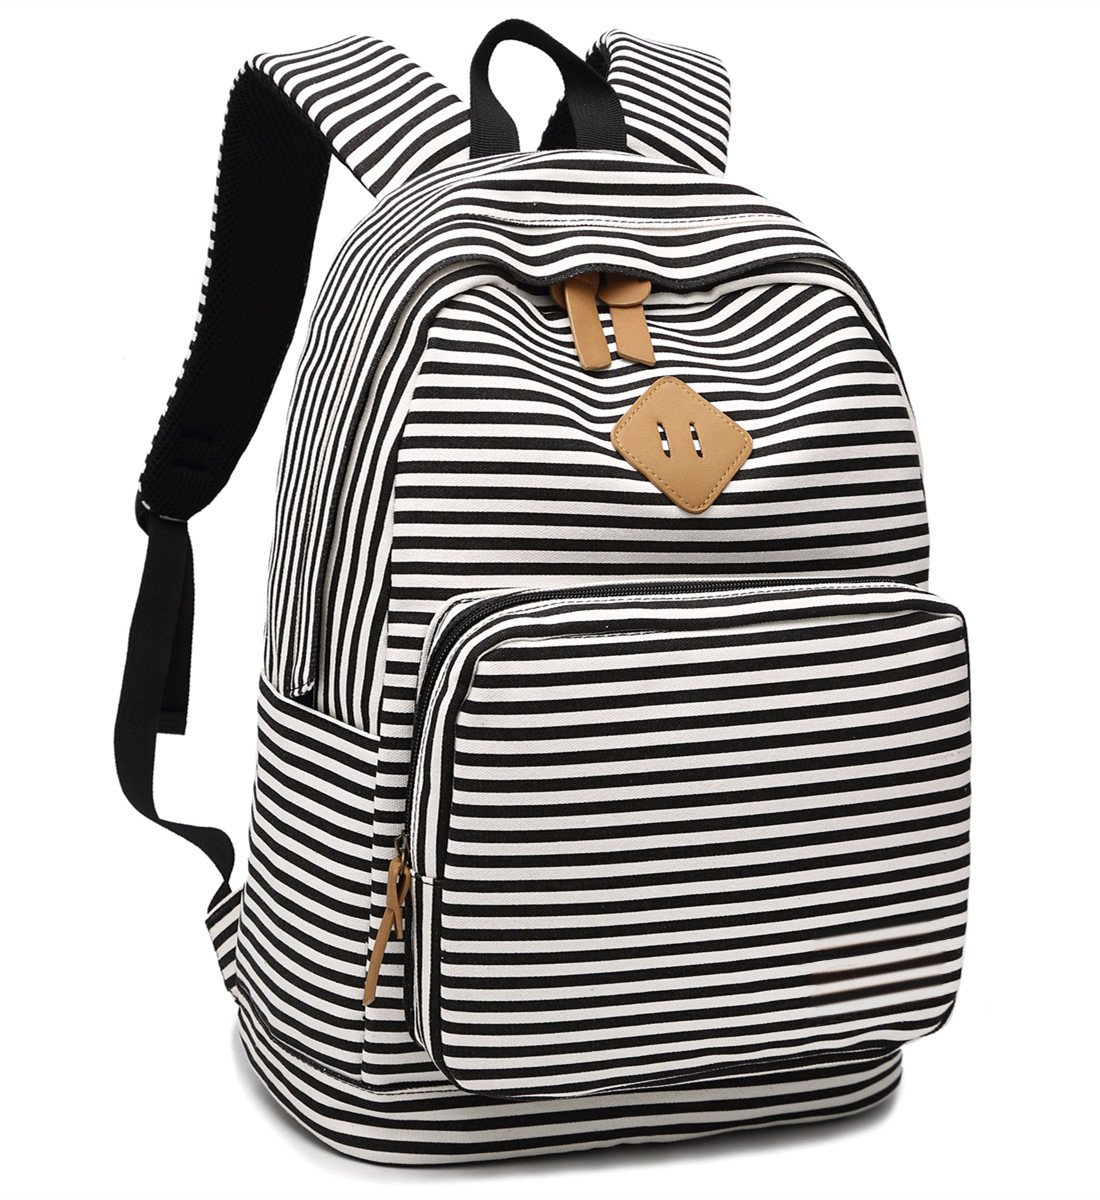 BLUBOON Canvas School Backpack Teen Girls Bookbag Striped Women Travel Laptop Daypack (Black White)